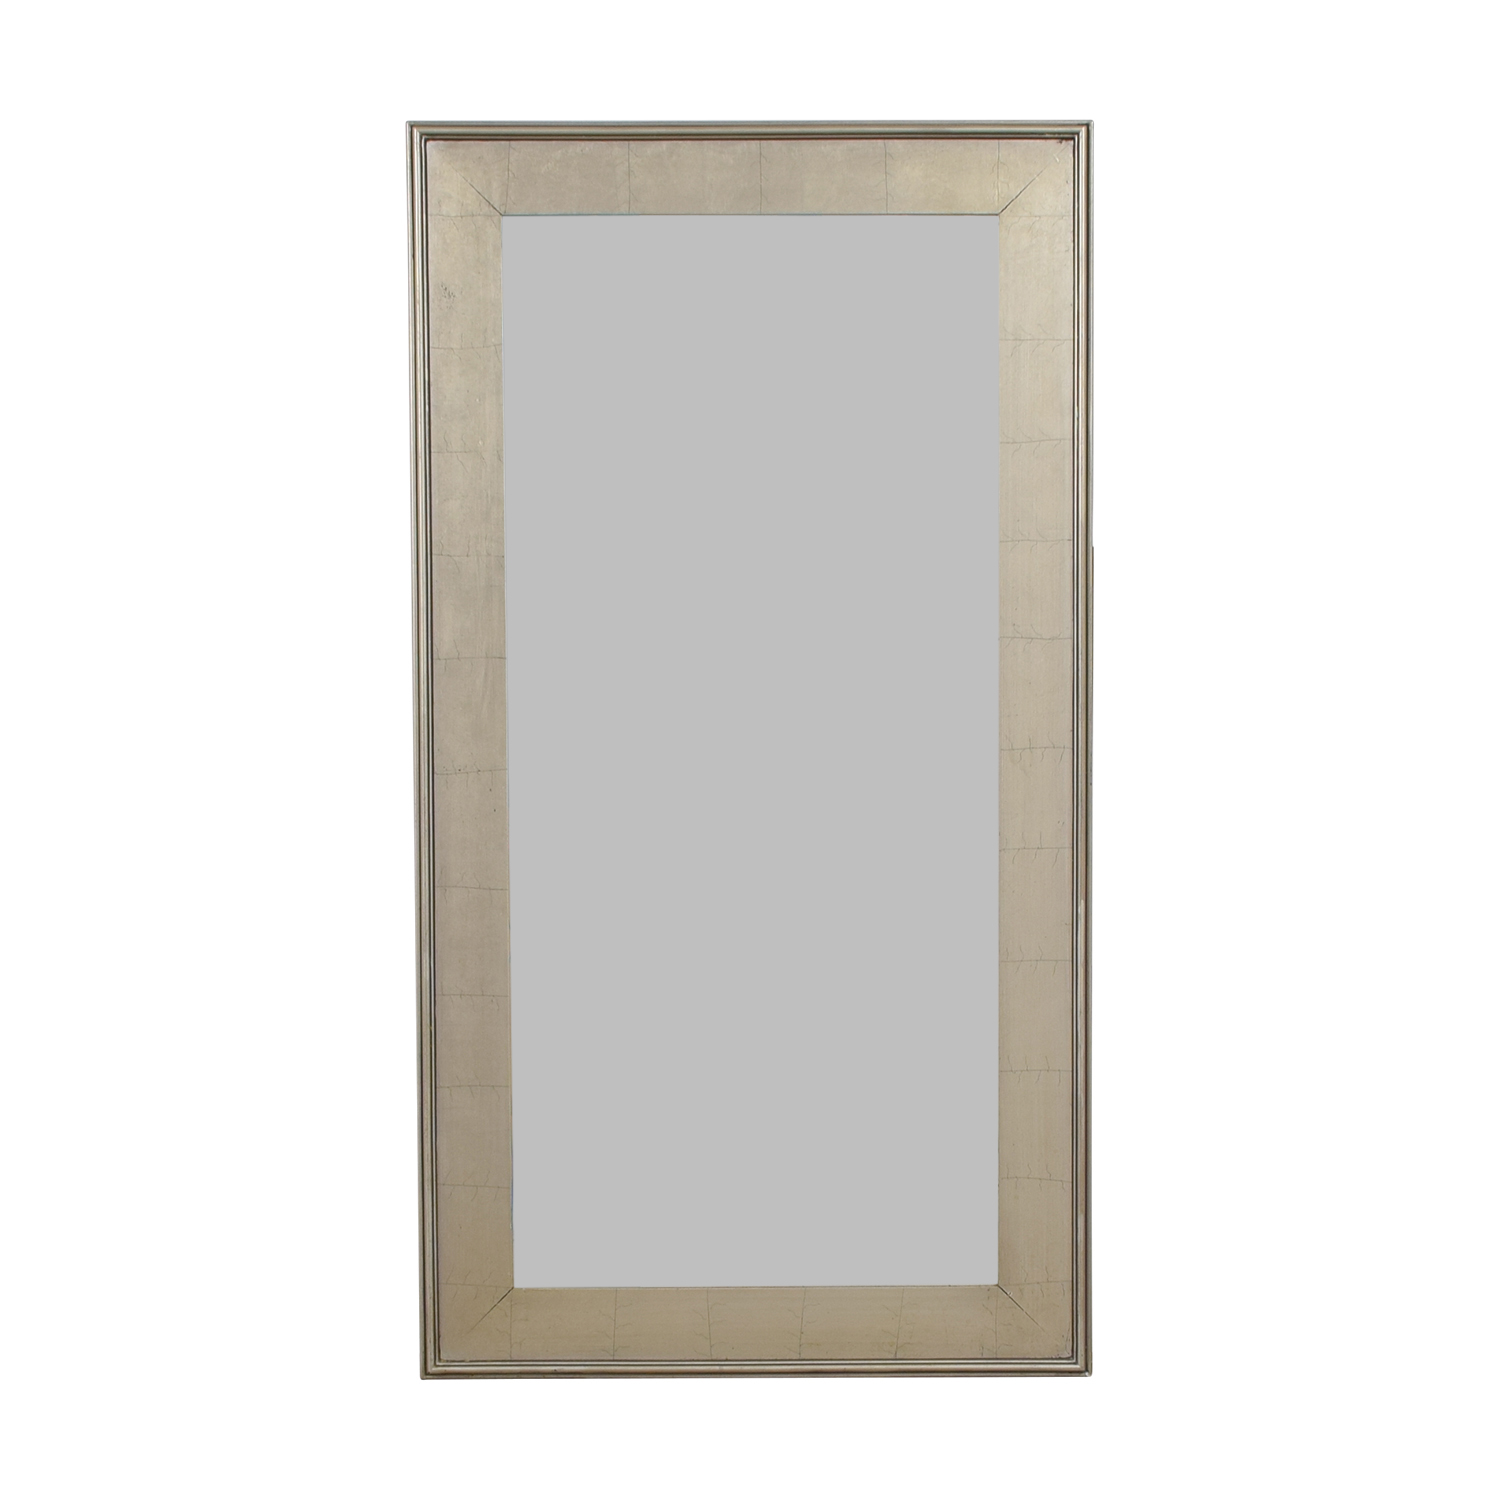 silver floor mirror. Buy Pottery Barn Silver Floor Mirror Decor